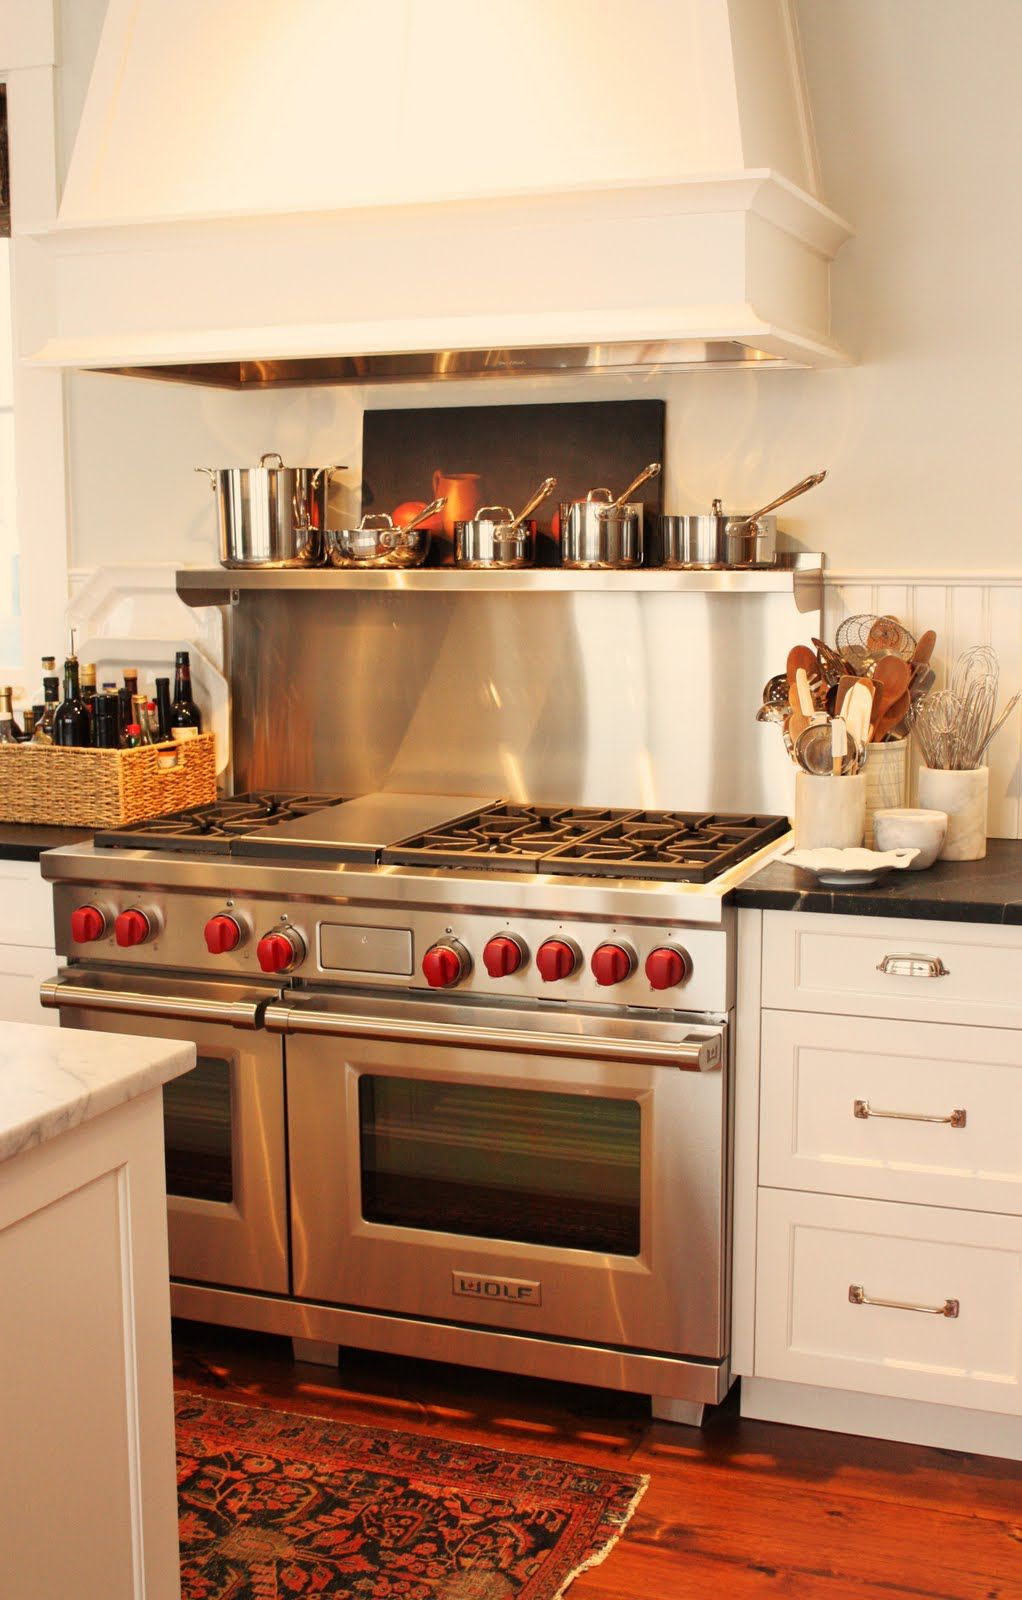 For The Love Of A House Kitchen 1. Wall Color Is Benjamin Moore Gray Owl For The Love Of A House The Kitchen Details